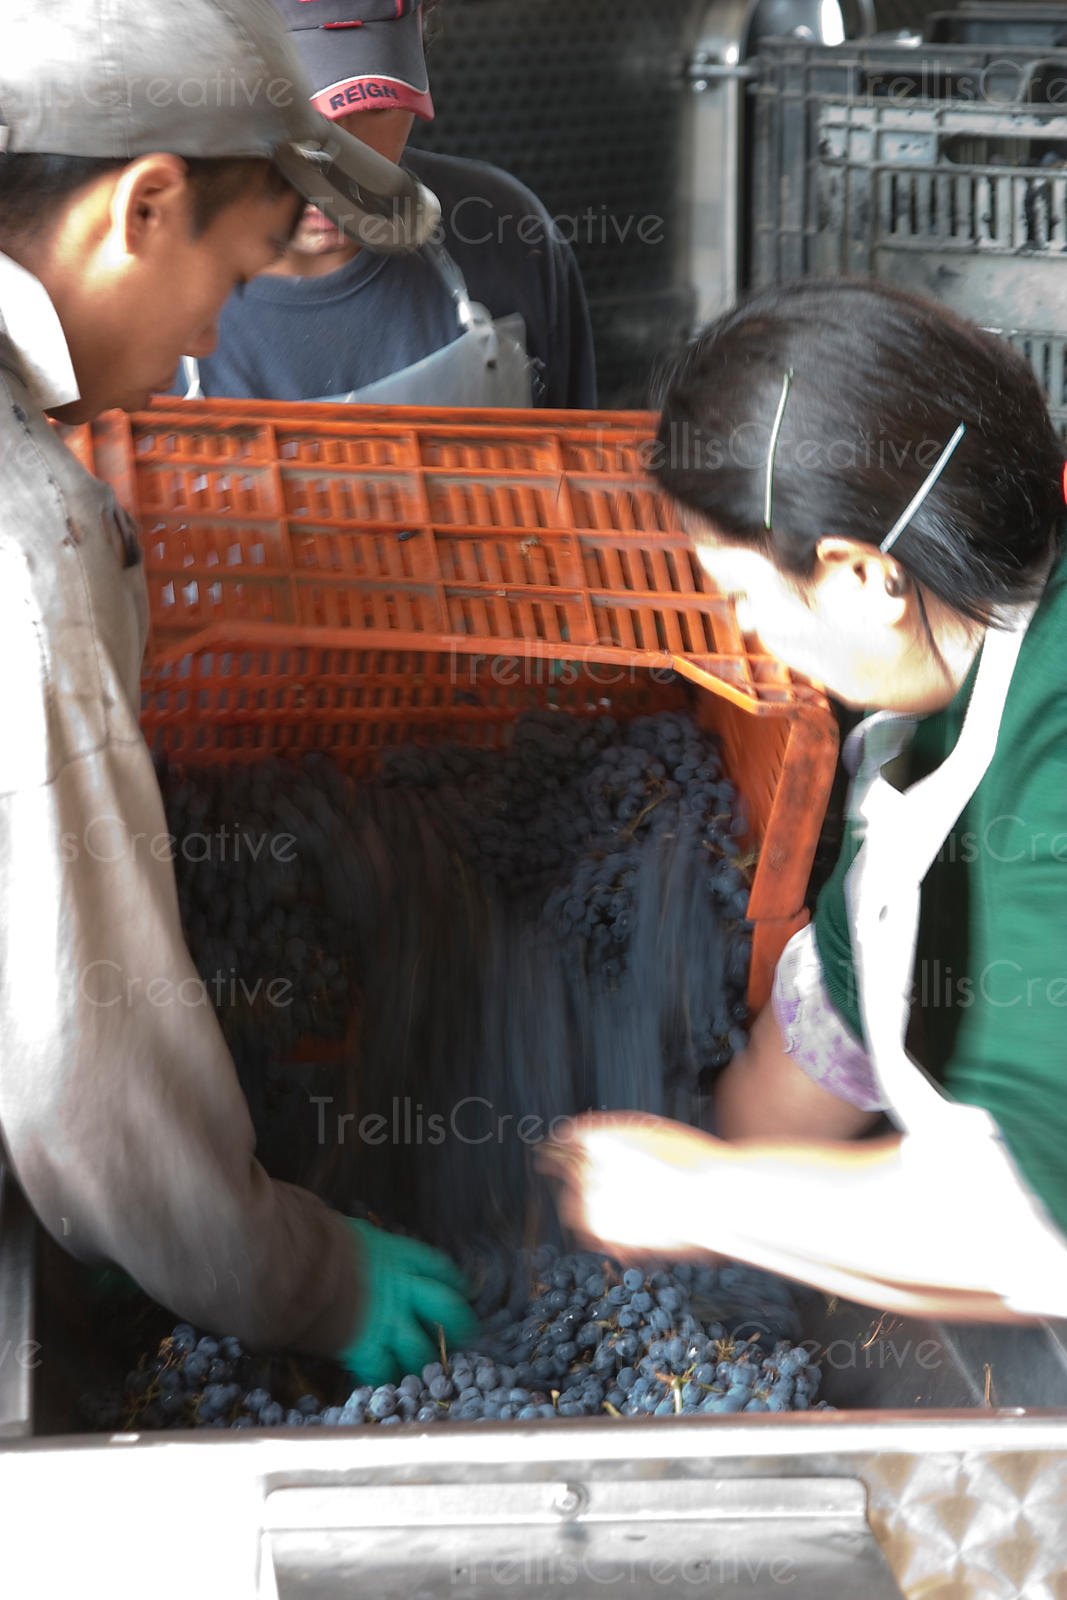 A winemaker dumps malbec wine grapes into a crusher destemmer after harvest